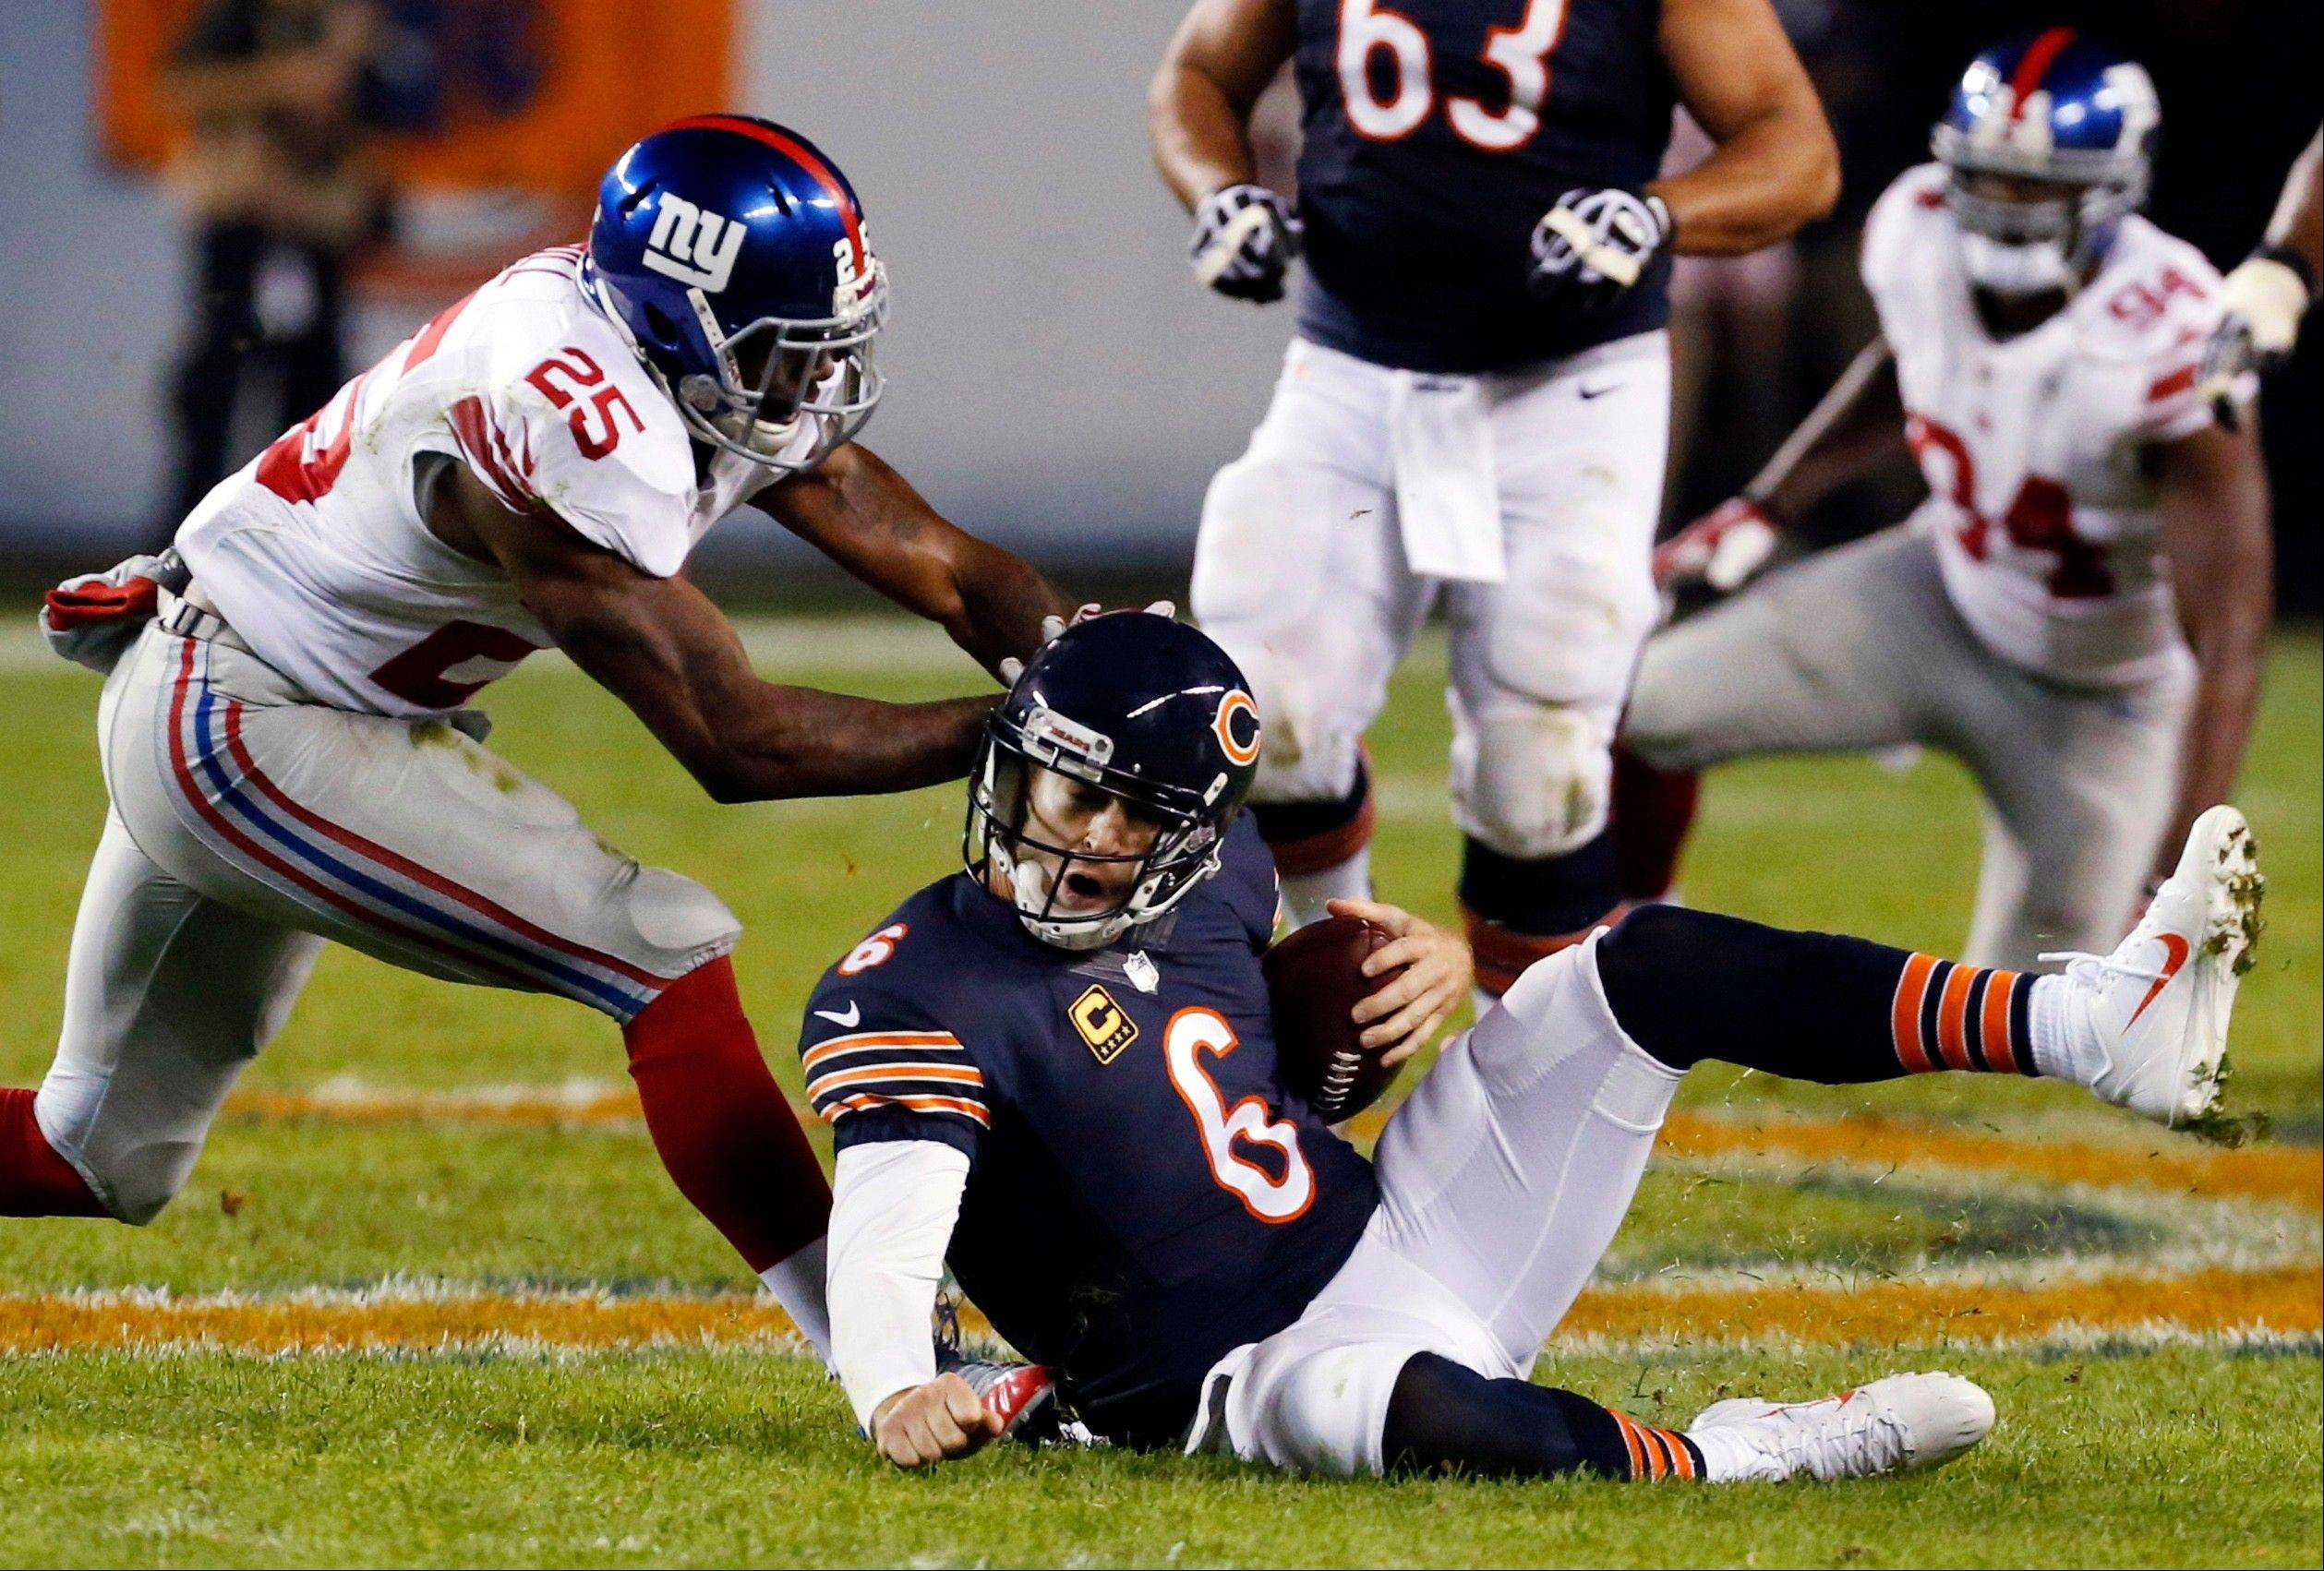 New York Giants safety Antrel Rolle (26) pushes on the helmet of Bears quarterback Jay Cutler (6) during the second half of a game in Chicago.